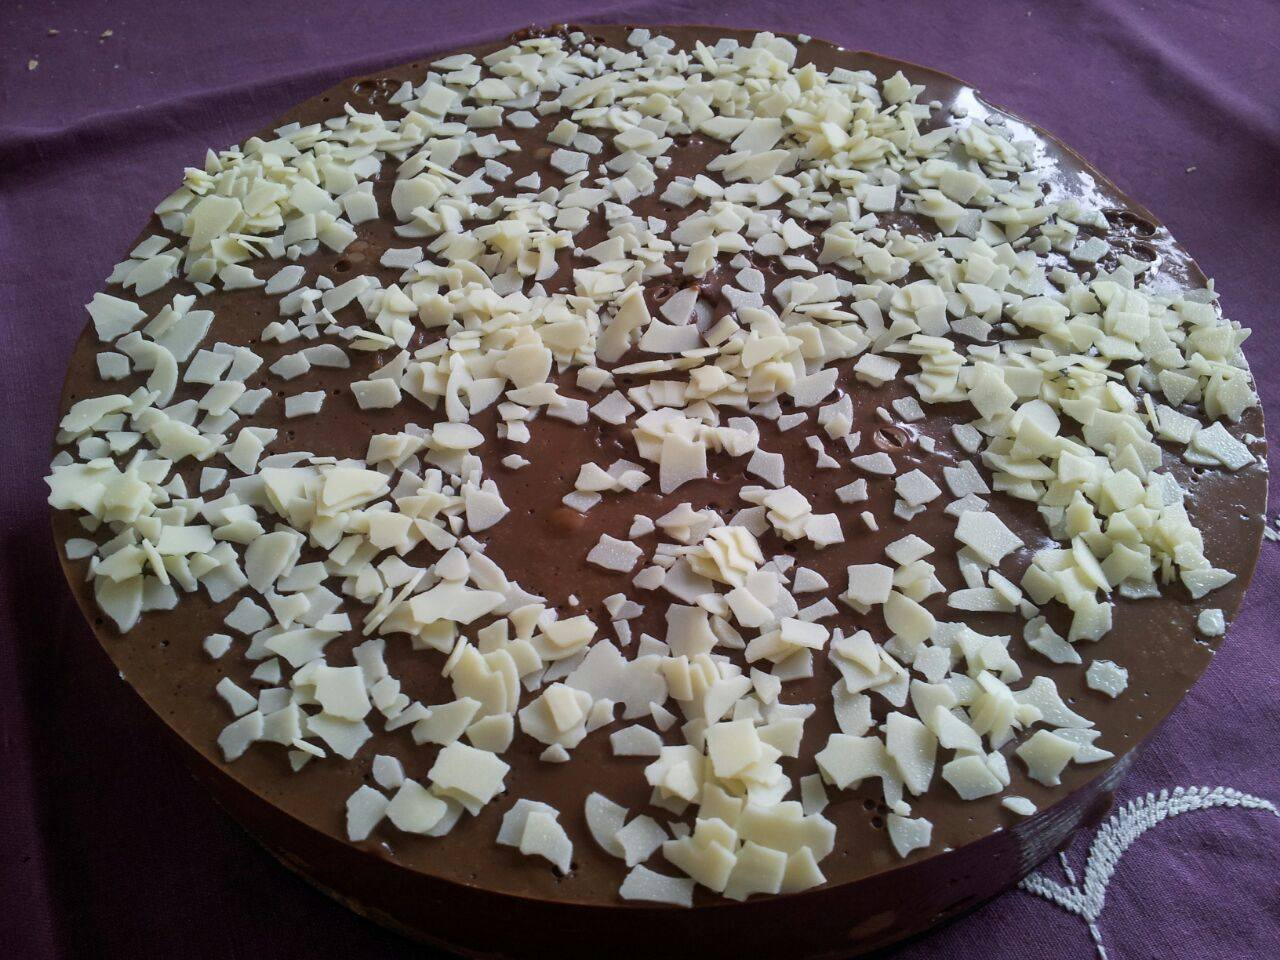 Tarta de chocolate con profiteroles